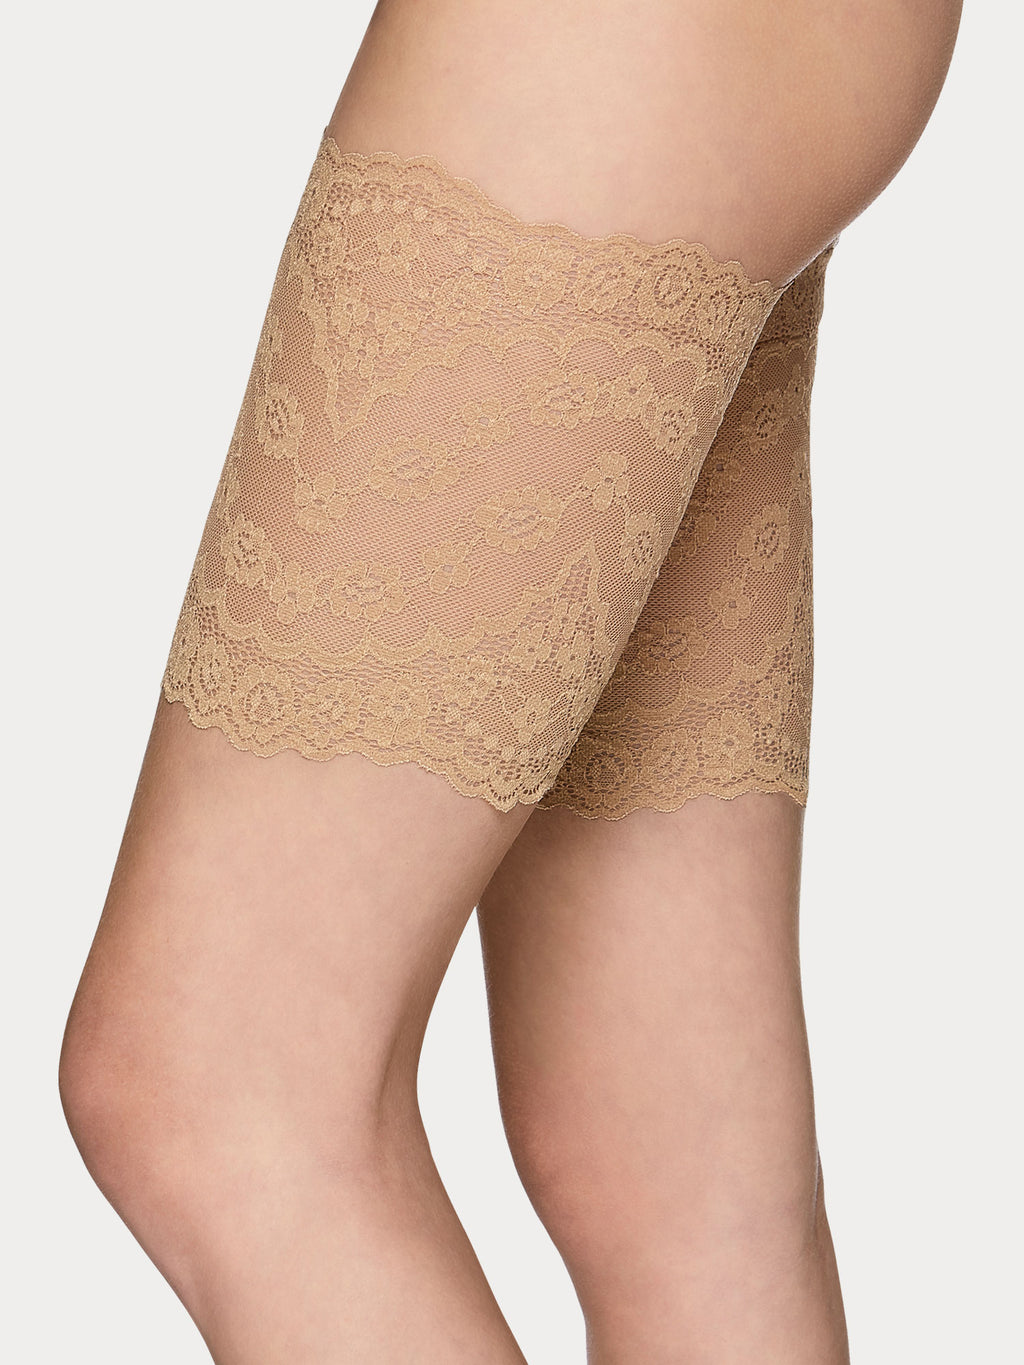 Vogue Hosiery anti-Chafing thigh bands.